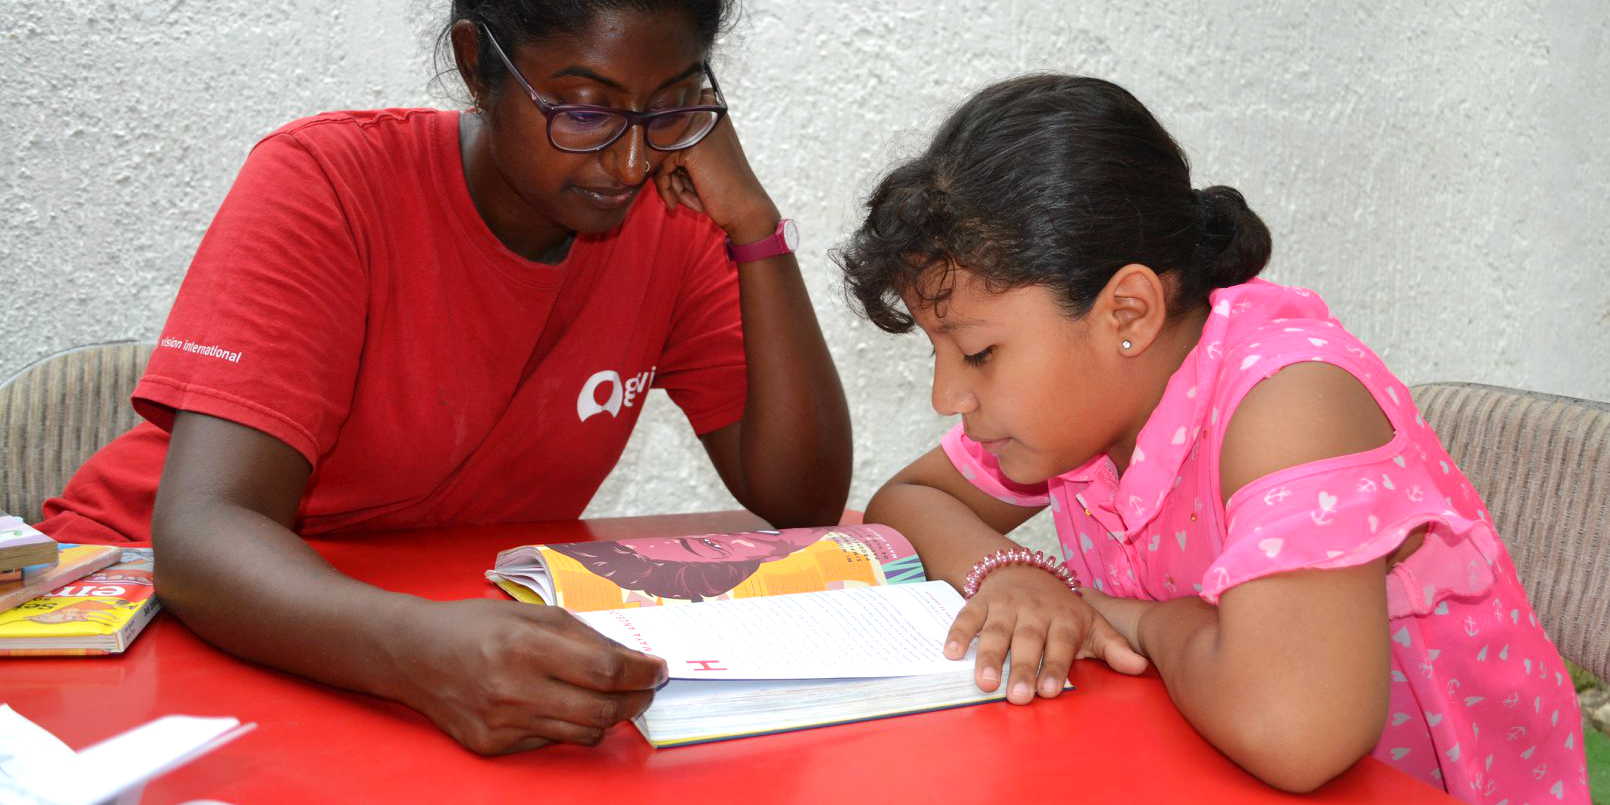 A GVI teacher helps a learner with their reading while on a volunteering with children program.